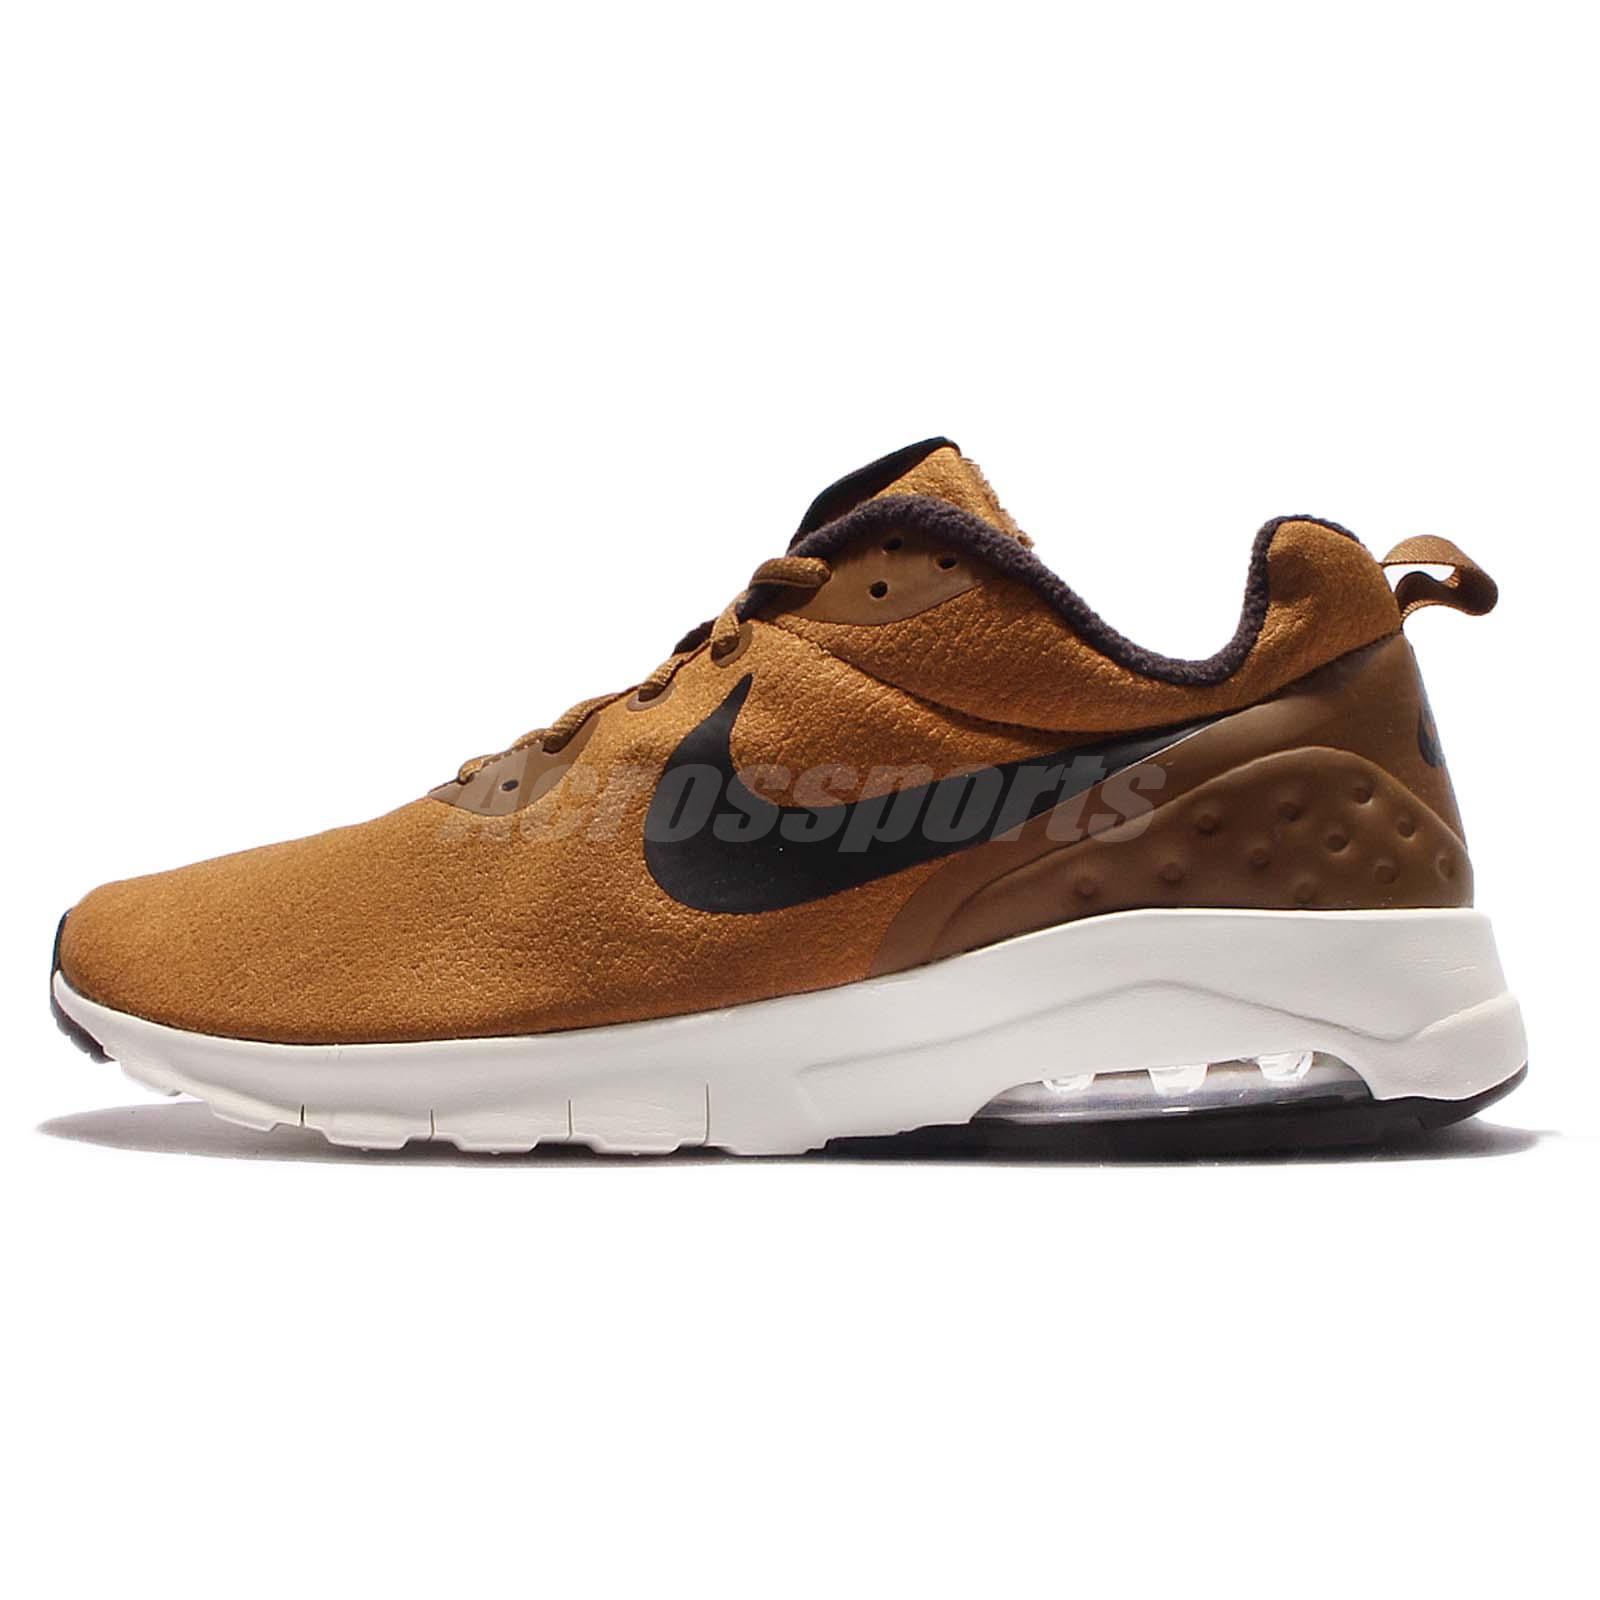 Nike Black Air Max Motion Low PREM Premium Brown Black Nike Men Running Shoes 861537200 a6e642